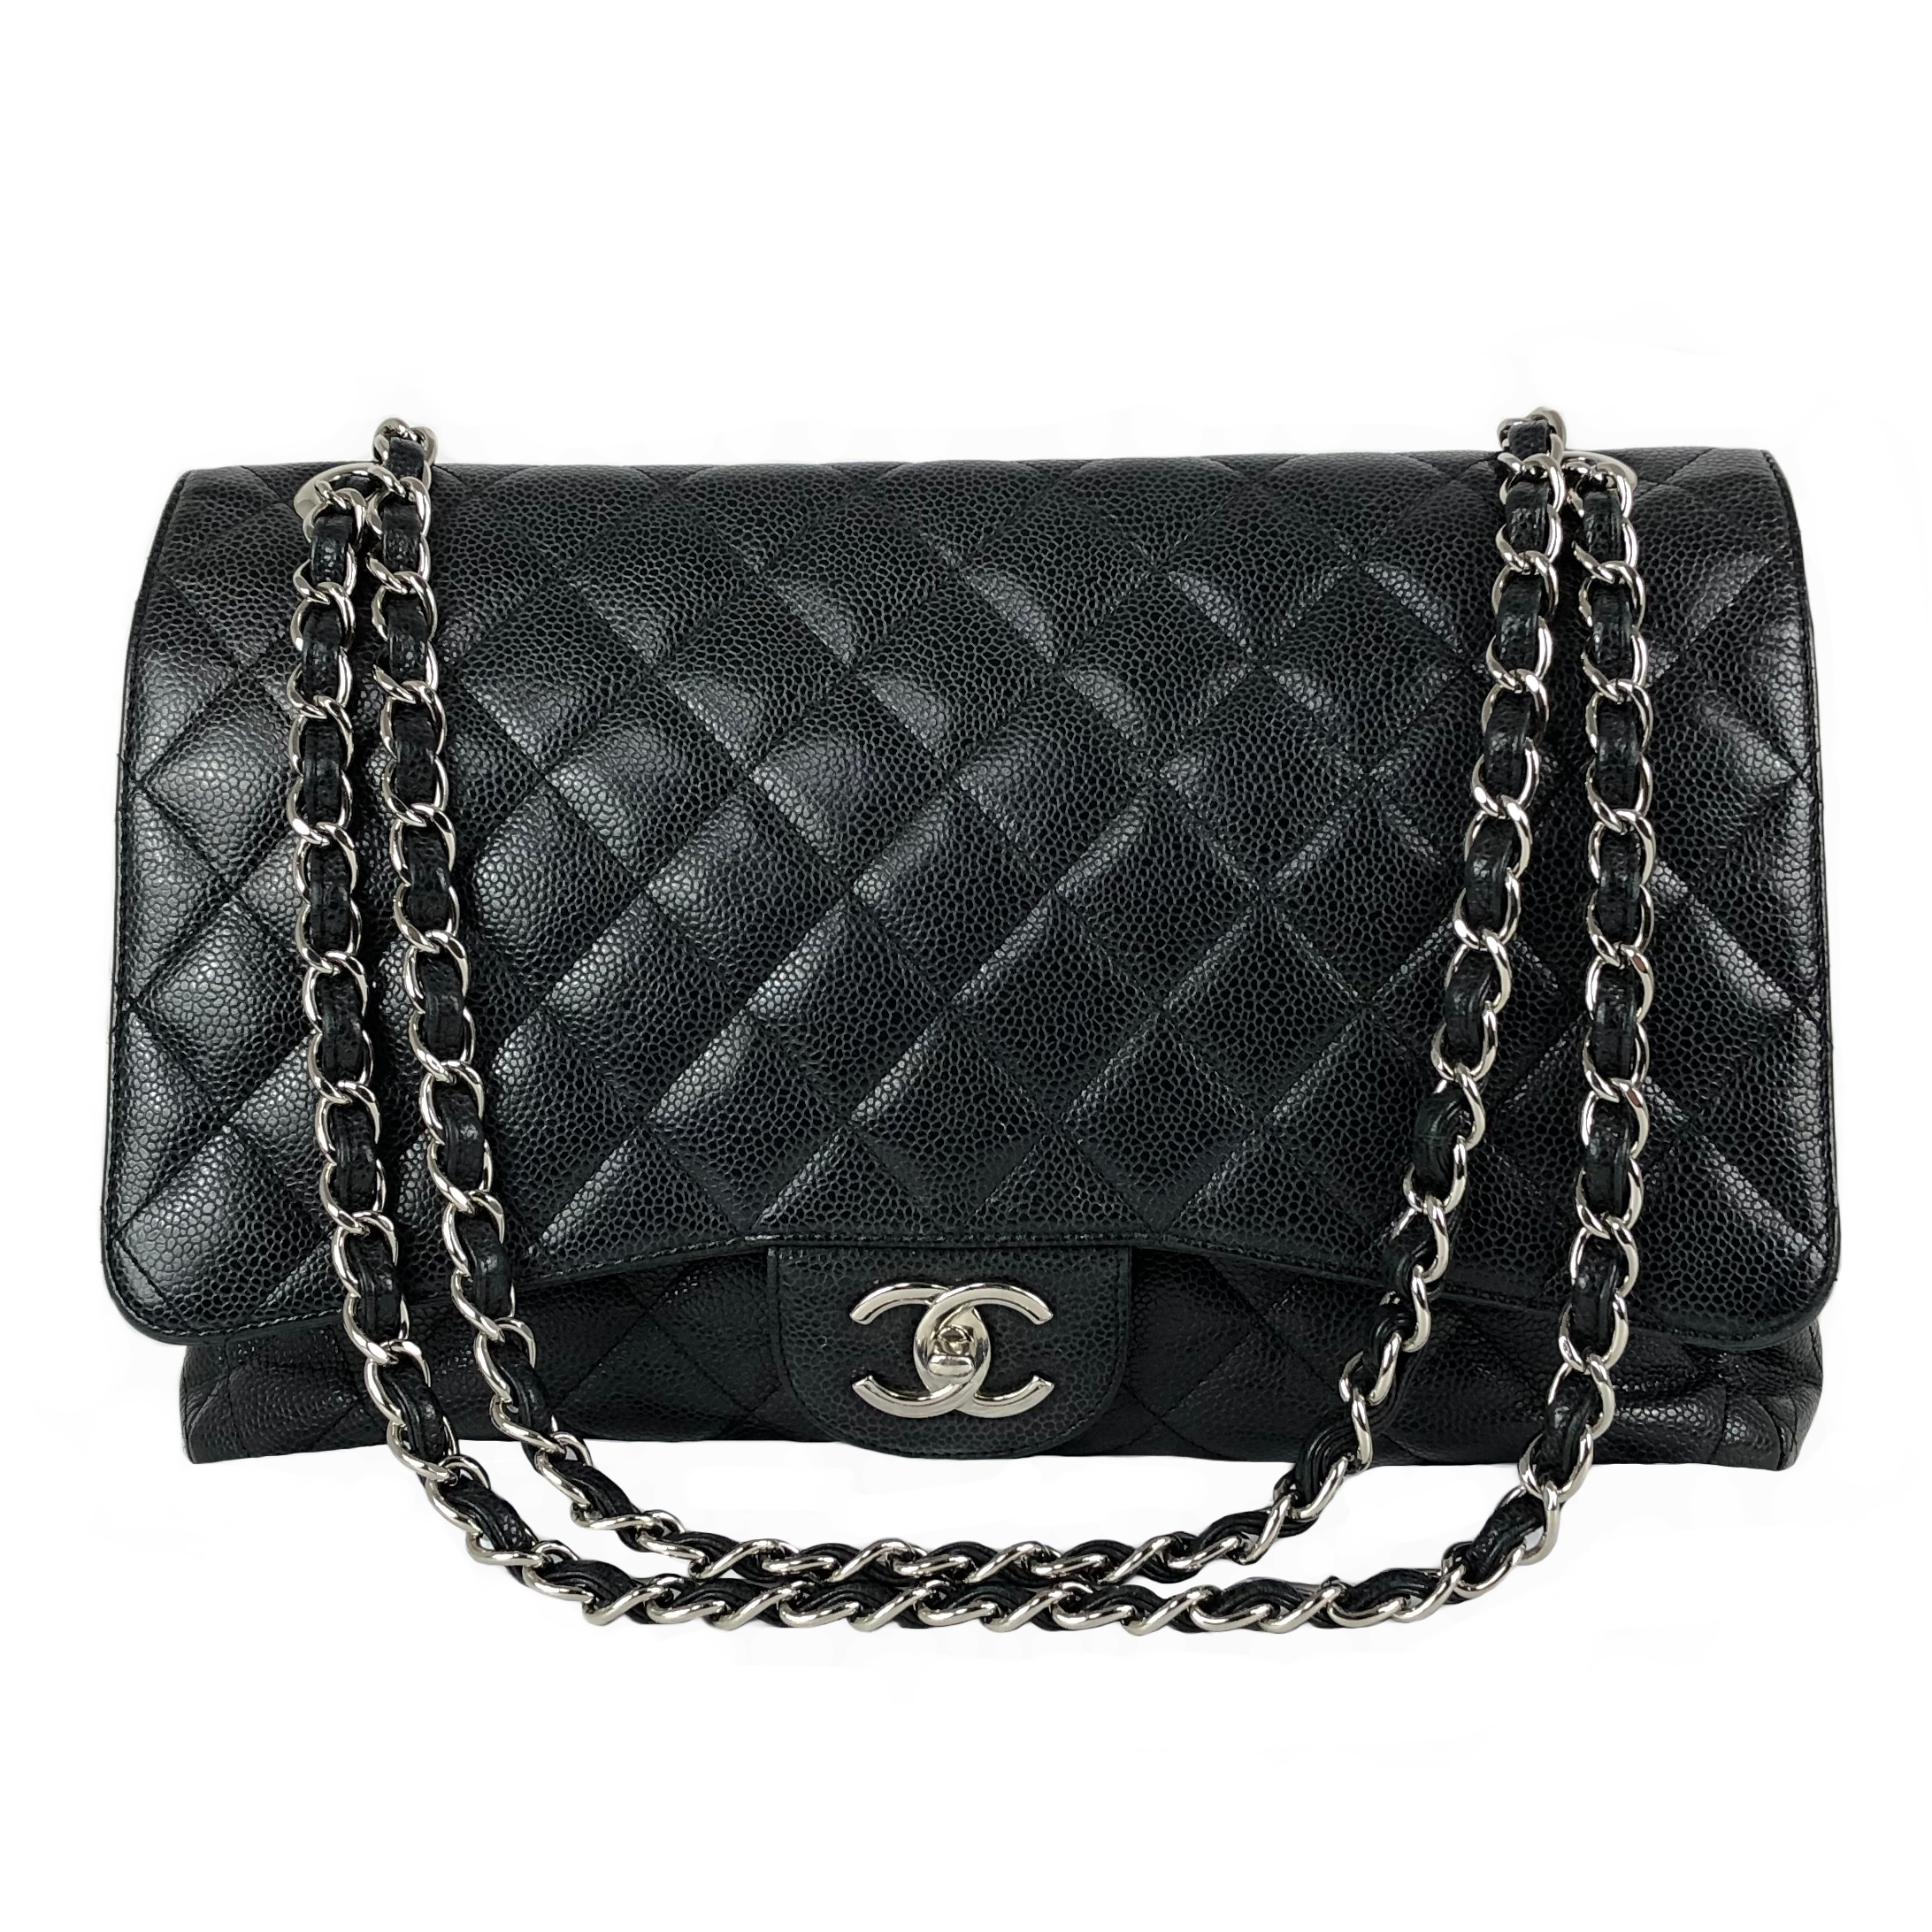 Sac Chanel Timeless cuir grainé gris anthracite face